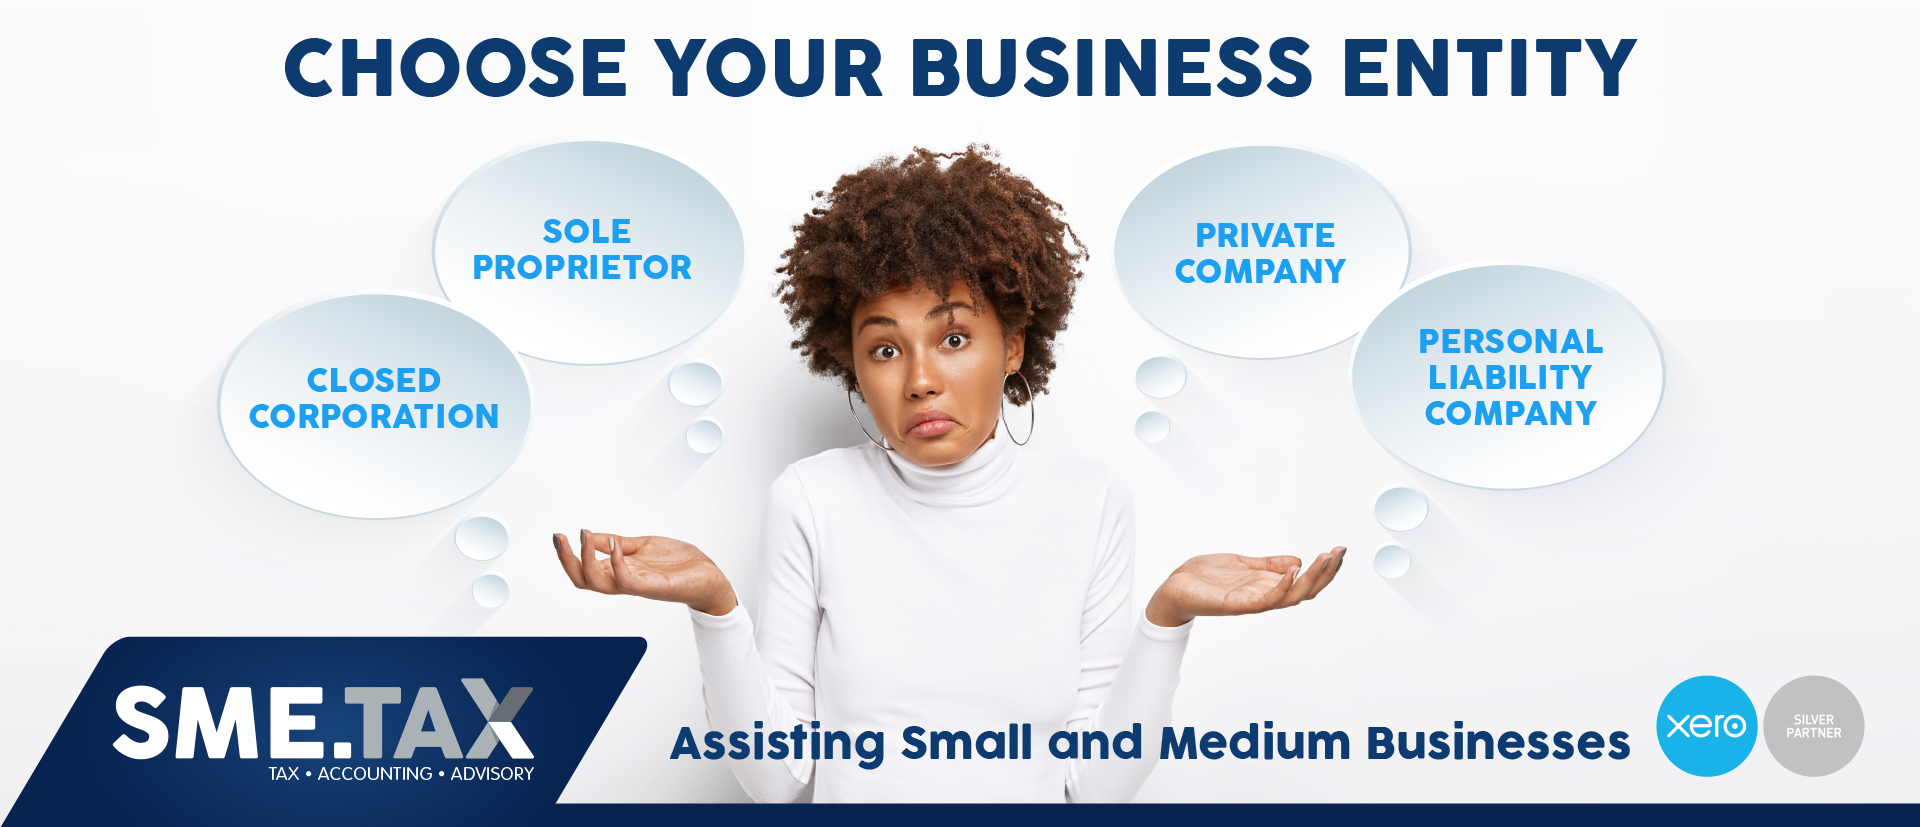 Choosing your Business Entity 3